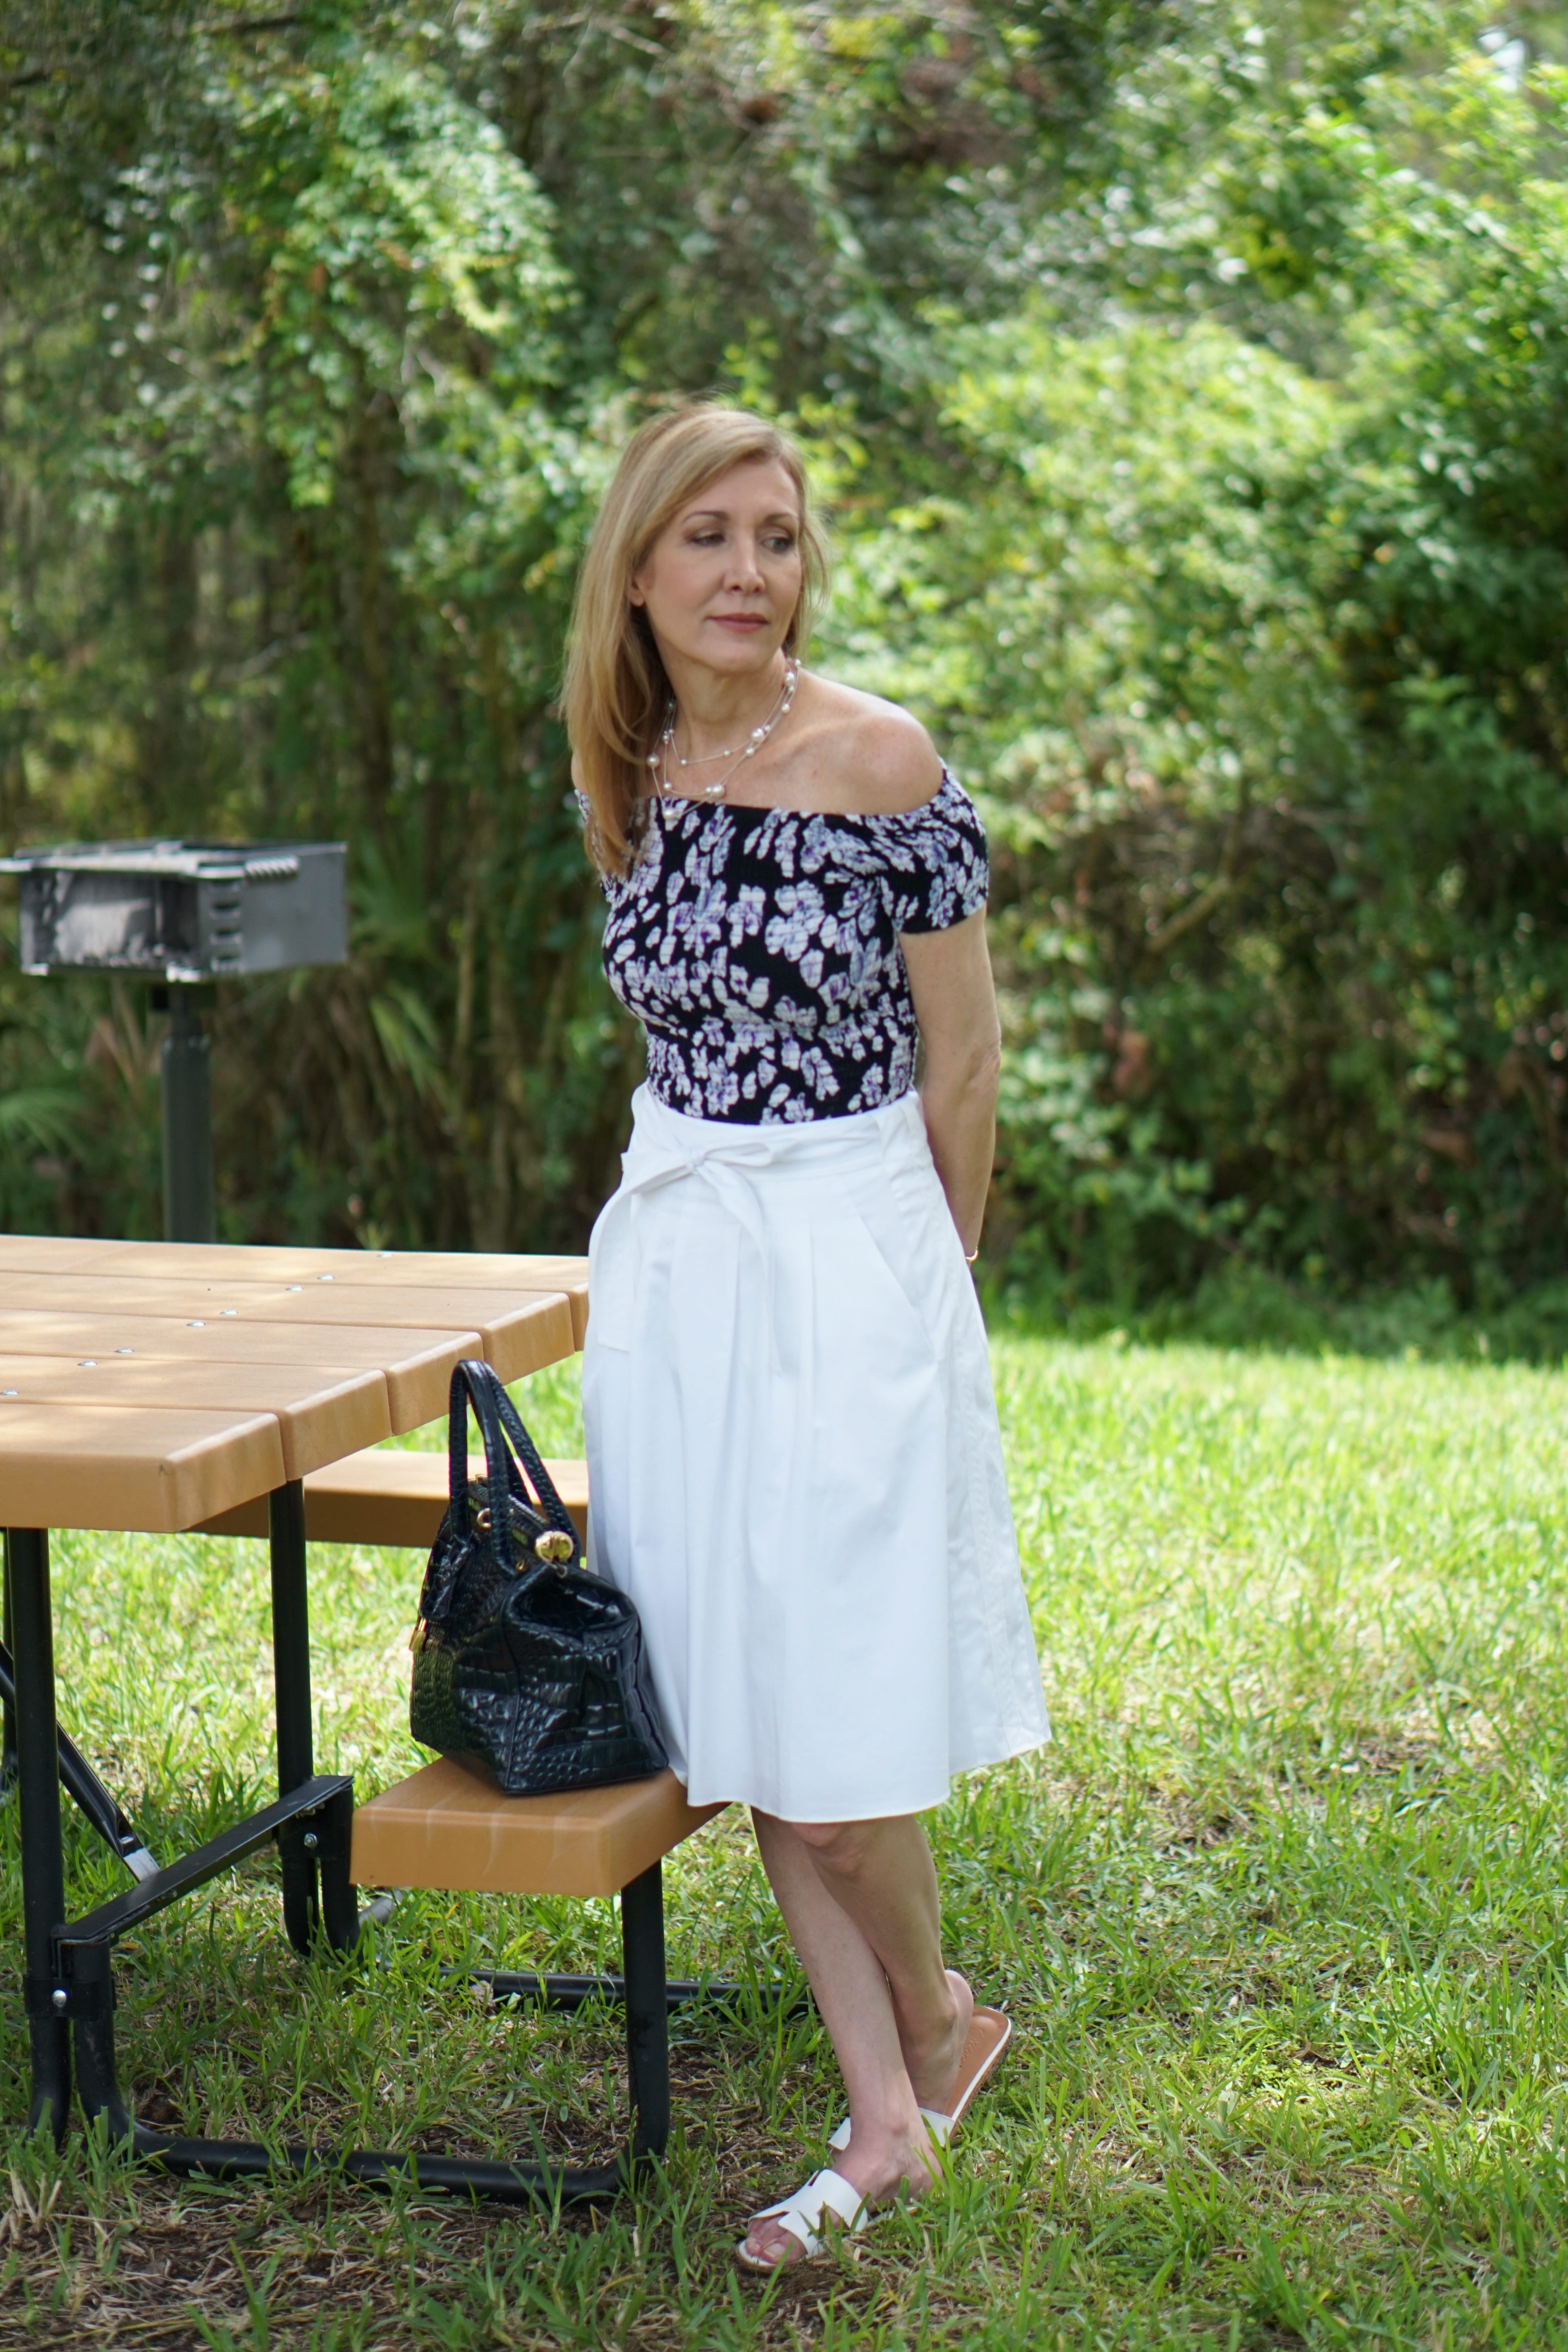 Fashion Challenge: Styling a Tube top with skirt